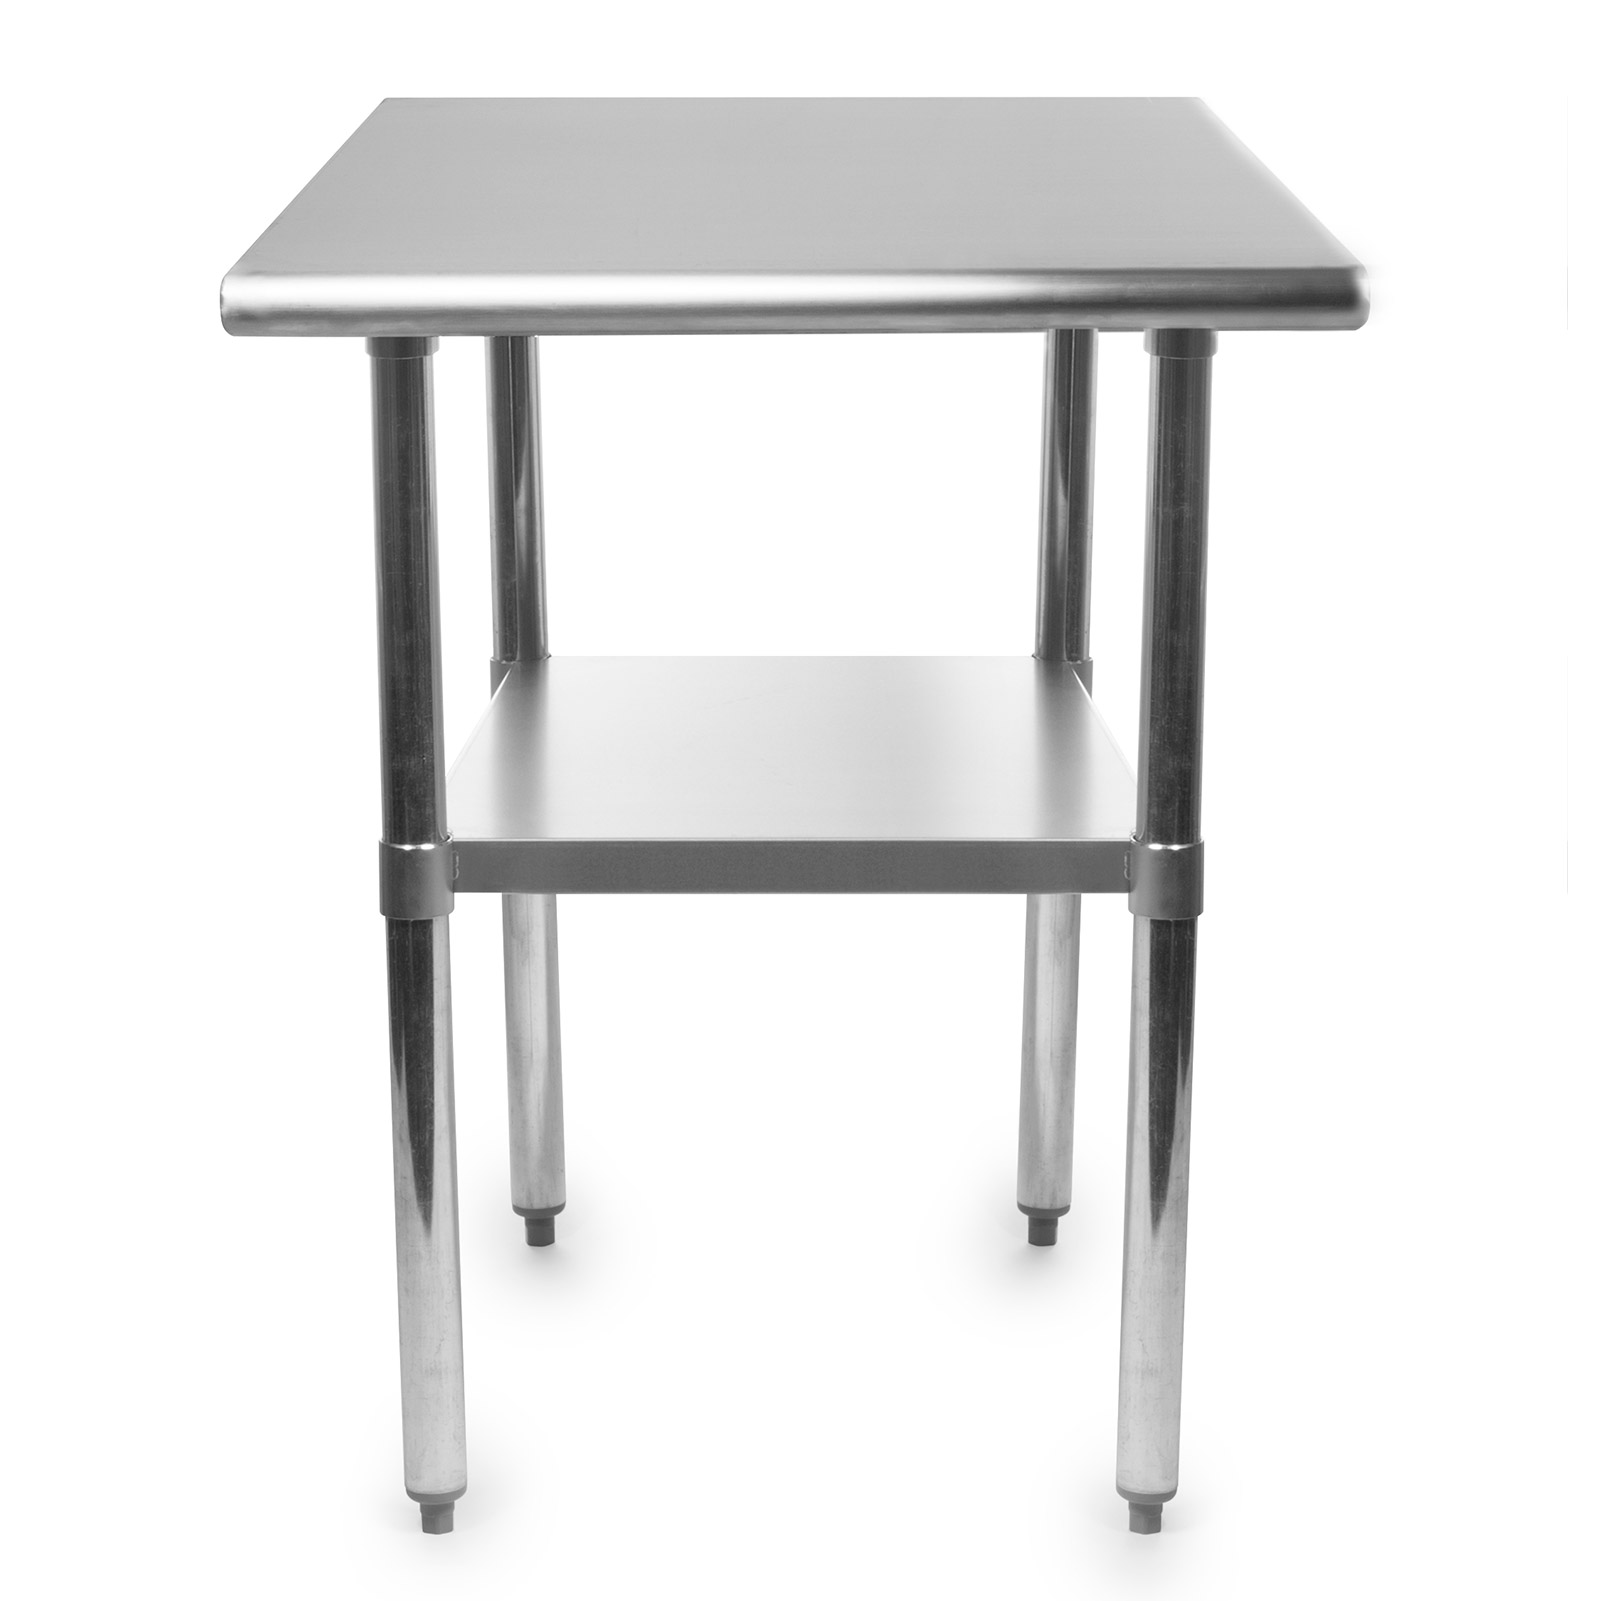 kitchen prep table outdoor gridmann nsf stainless steel commercial kitchen prep work table 60 in 30 walmartcom